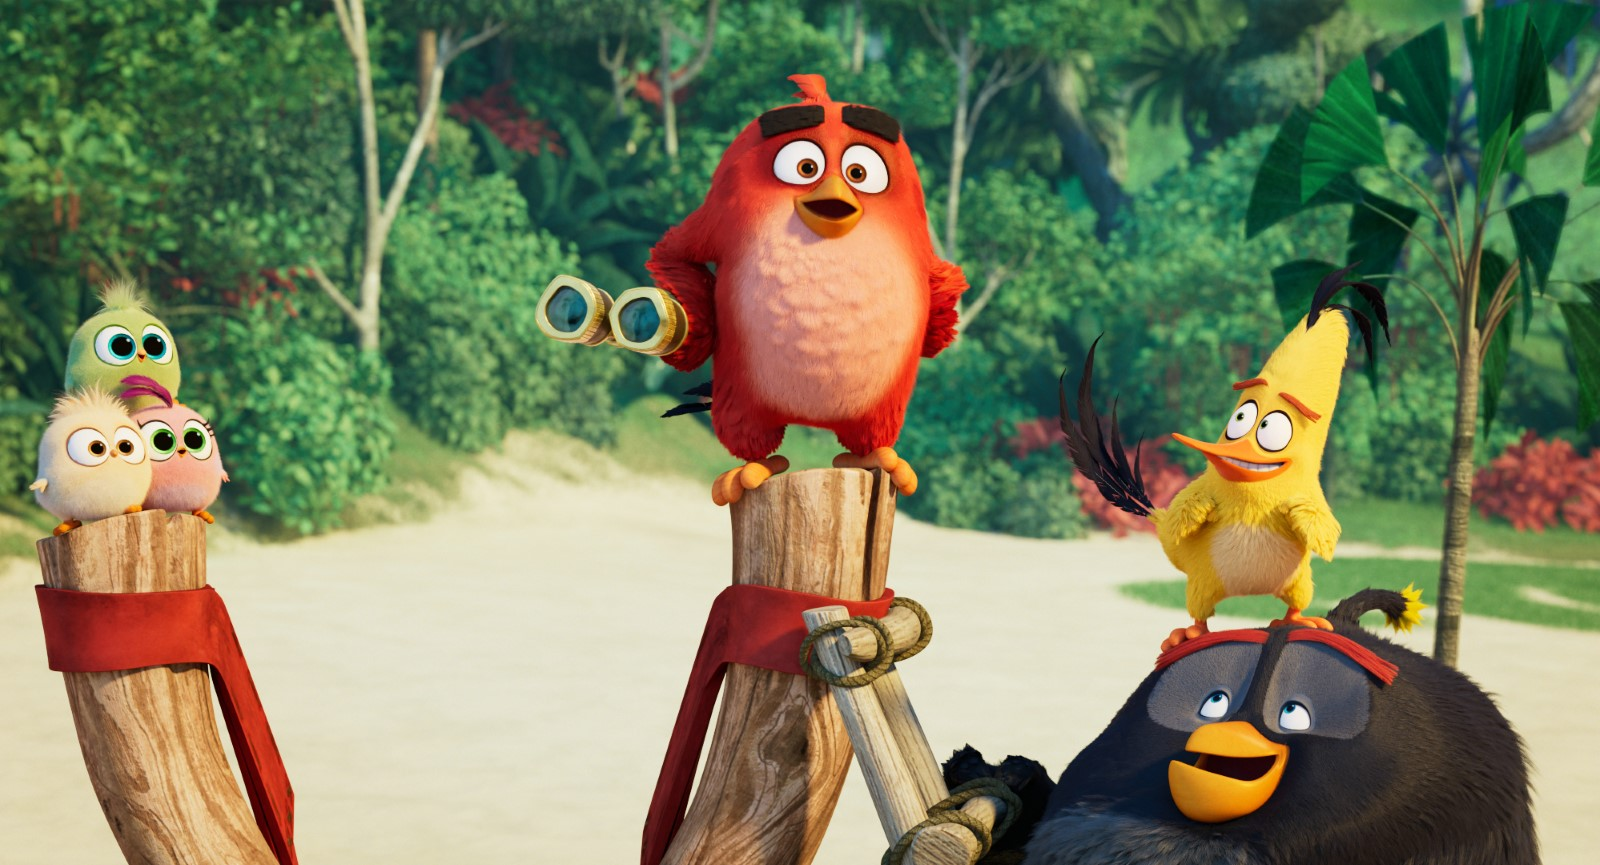 Jason Sudeikis, Danny McBride, Josh Gad, and Brooklynn Prince in The Angry Birds Movie 2 (2019)